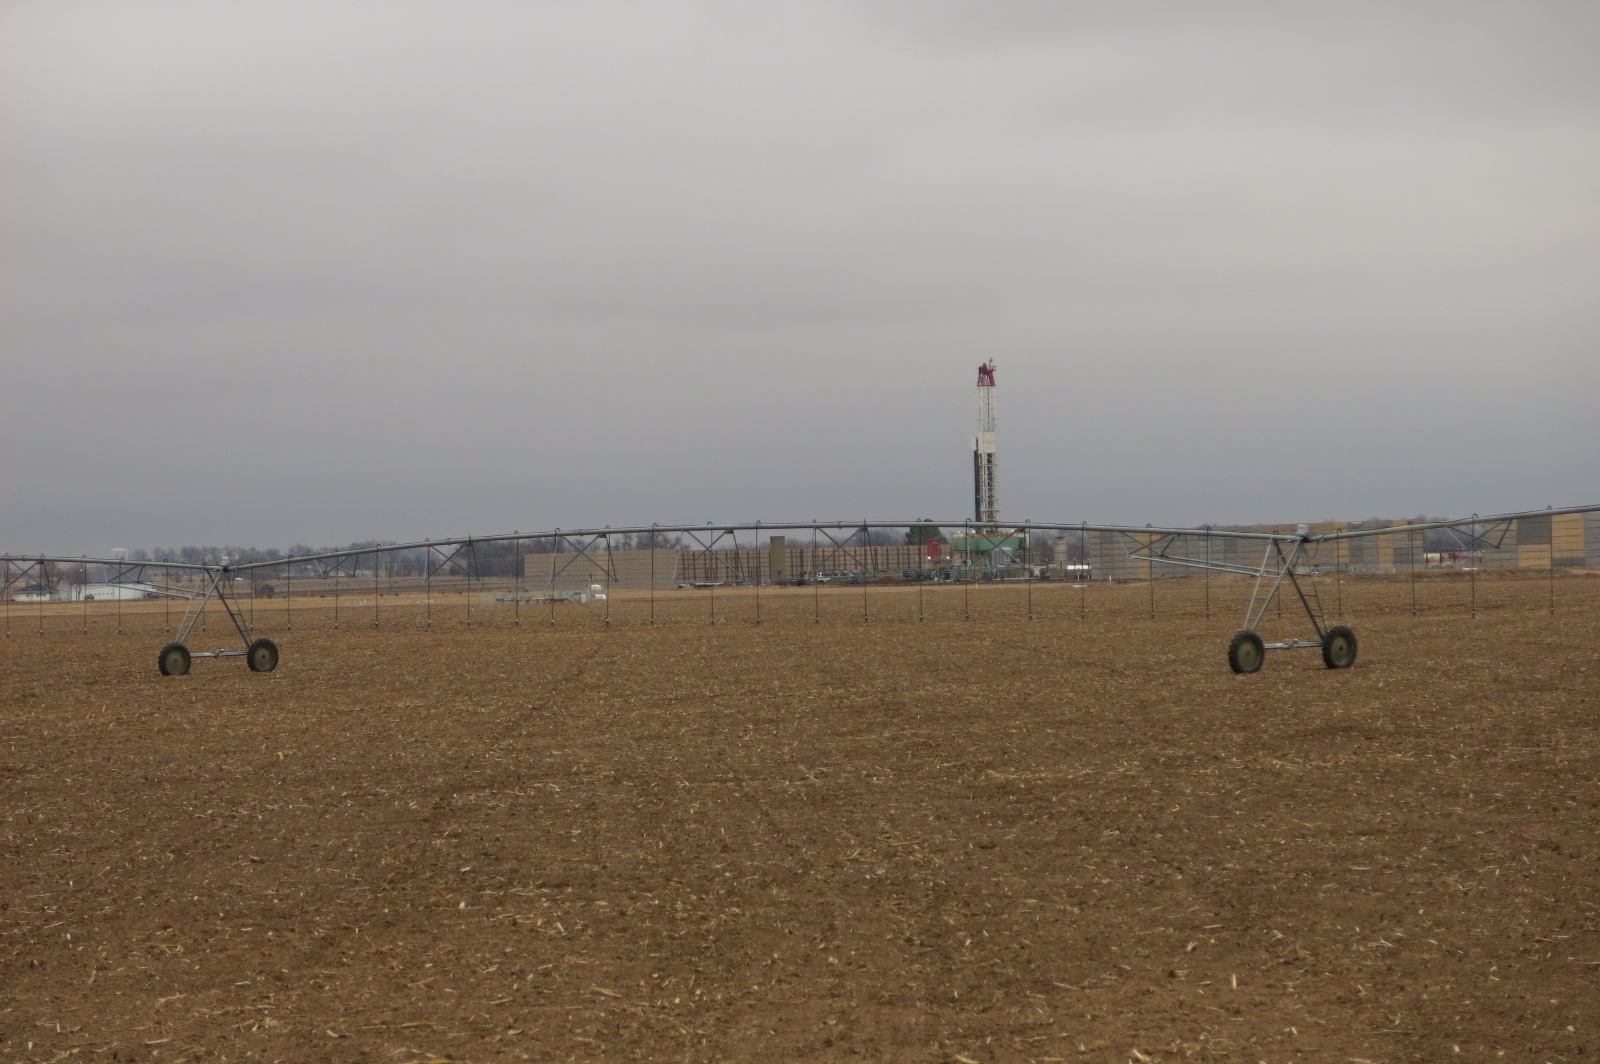 This drilling rig near Greeley shows the area's two powerful industries at work: agriculture and oil and gas. Nearly 90 percent of the state's oil is produced in Weld County.